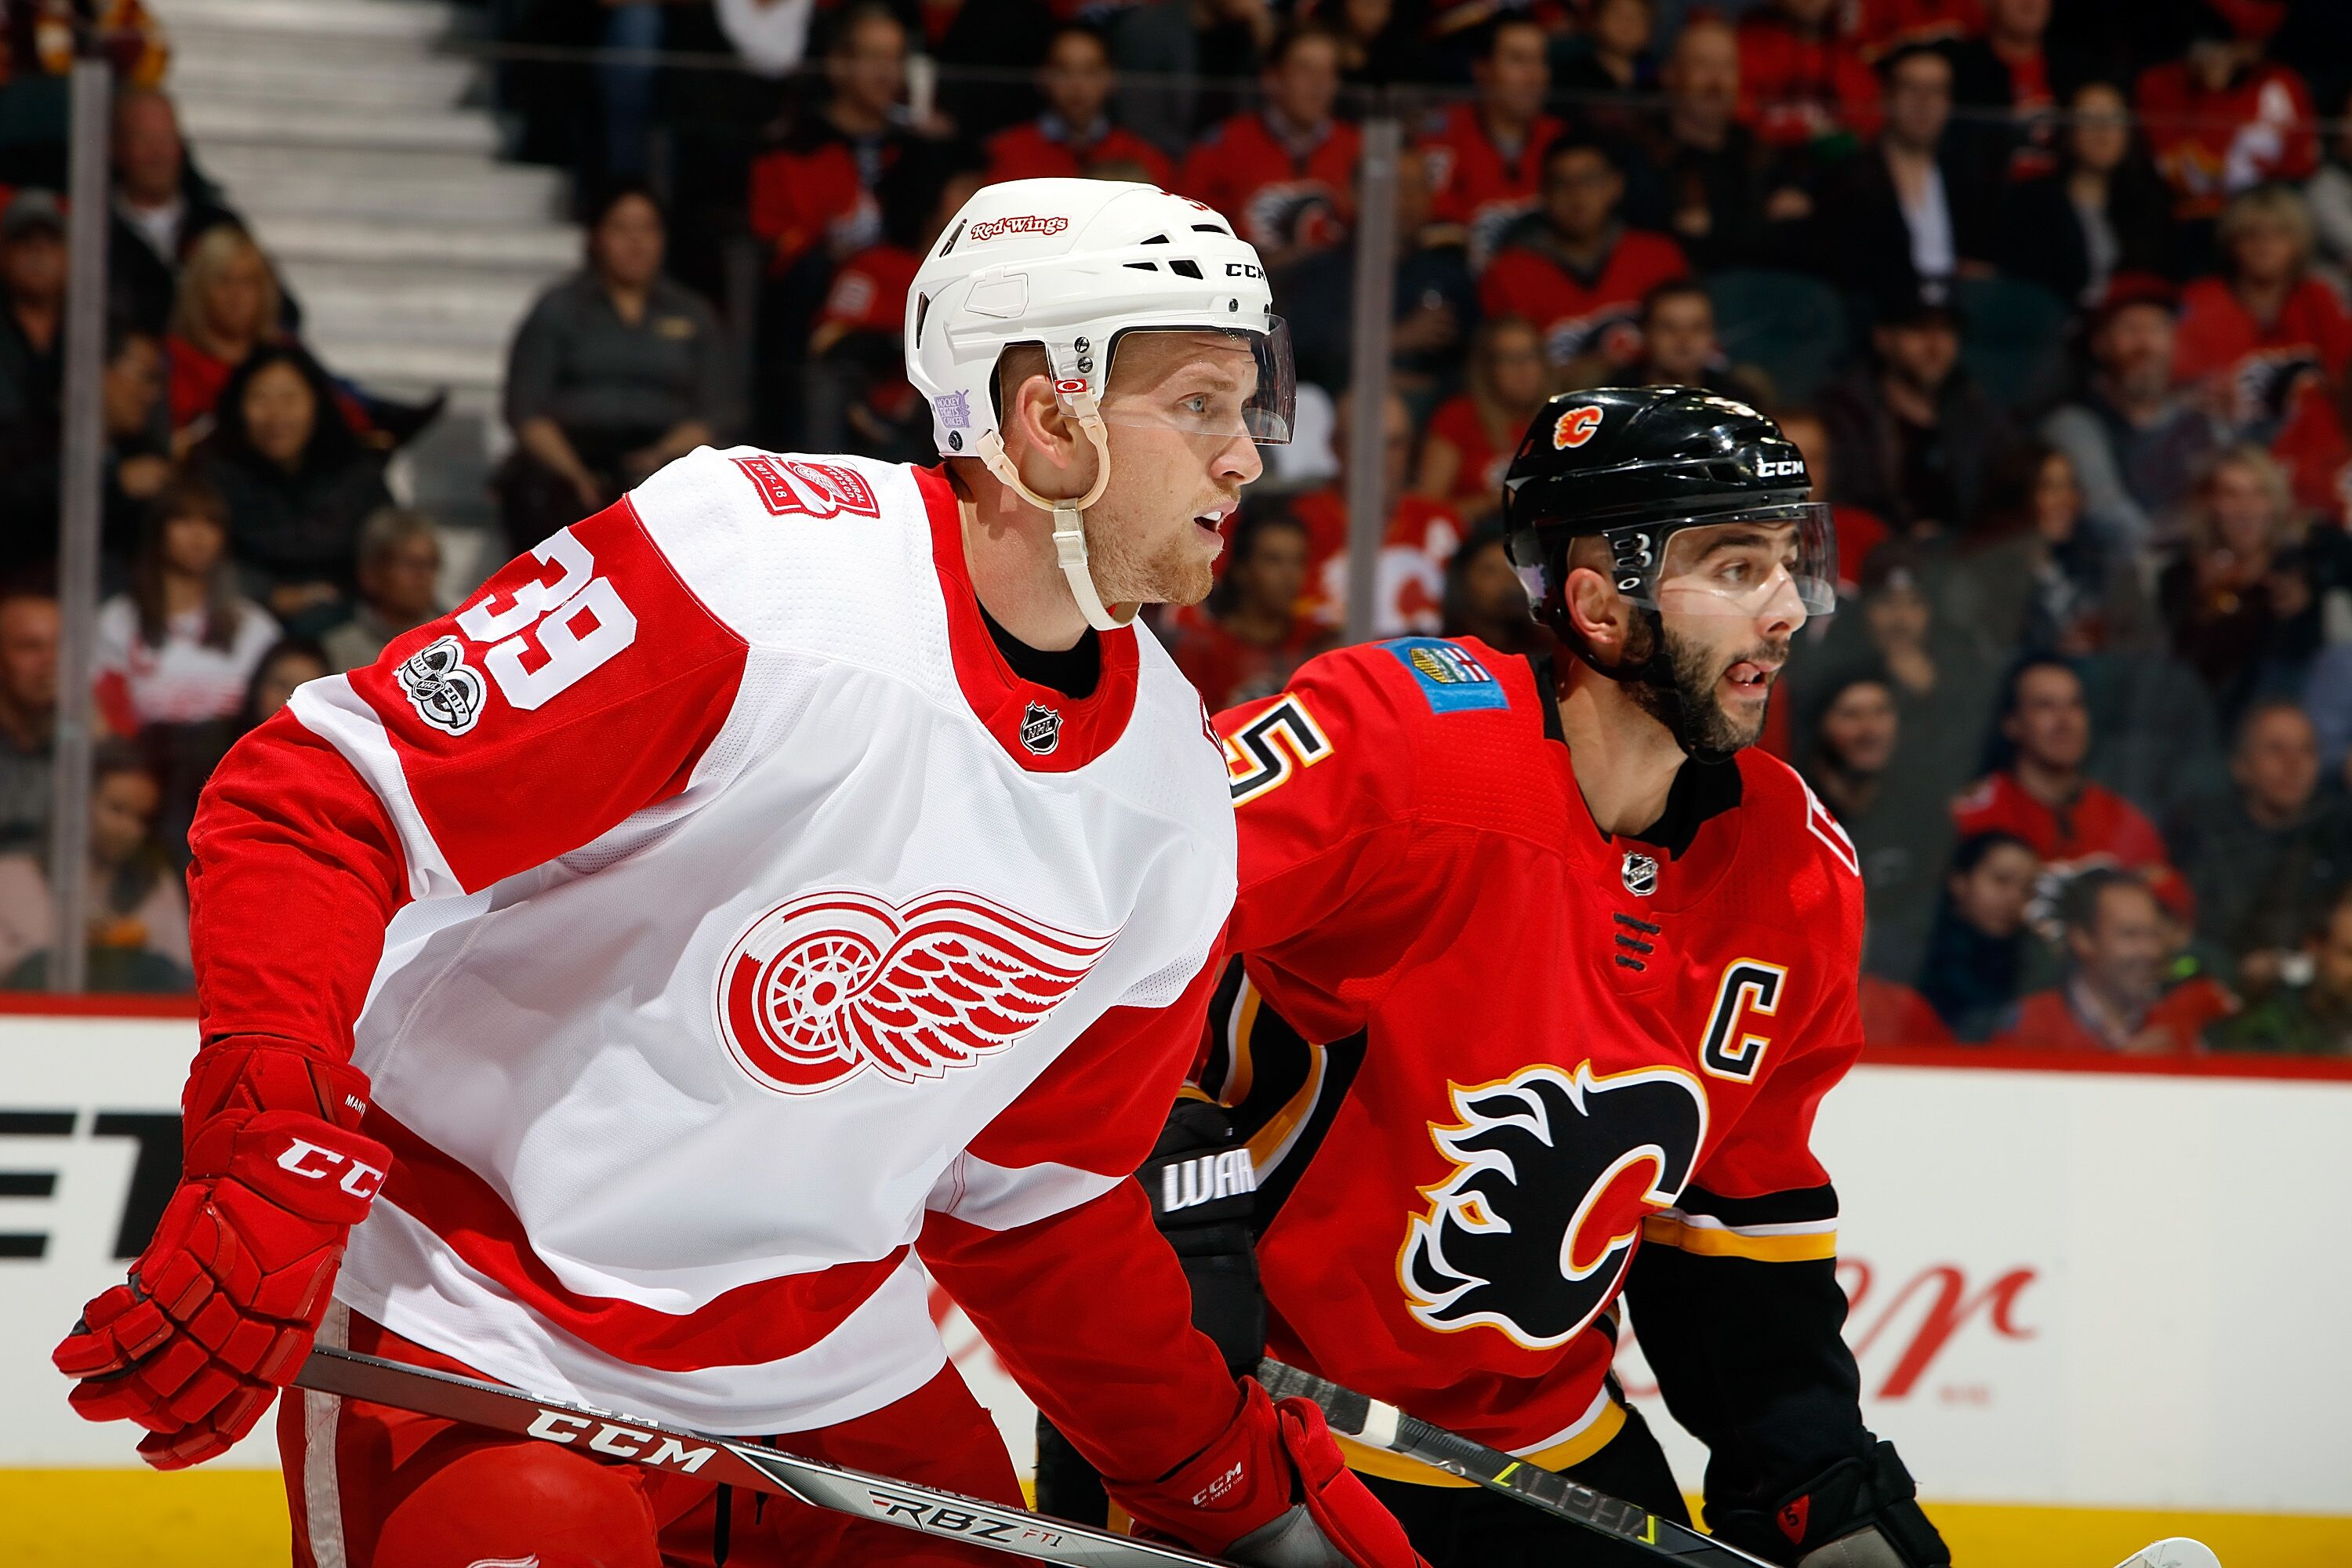 872298888-detroit-red-wings-v-calgary-flames.jpg